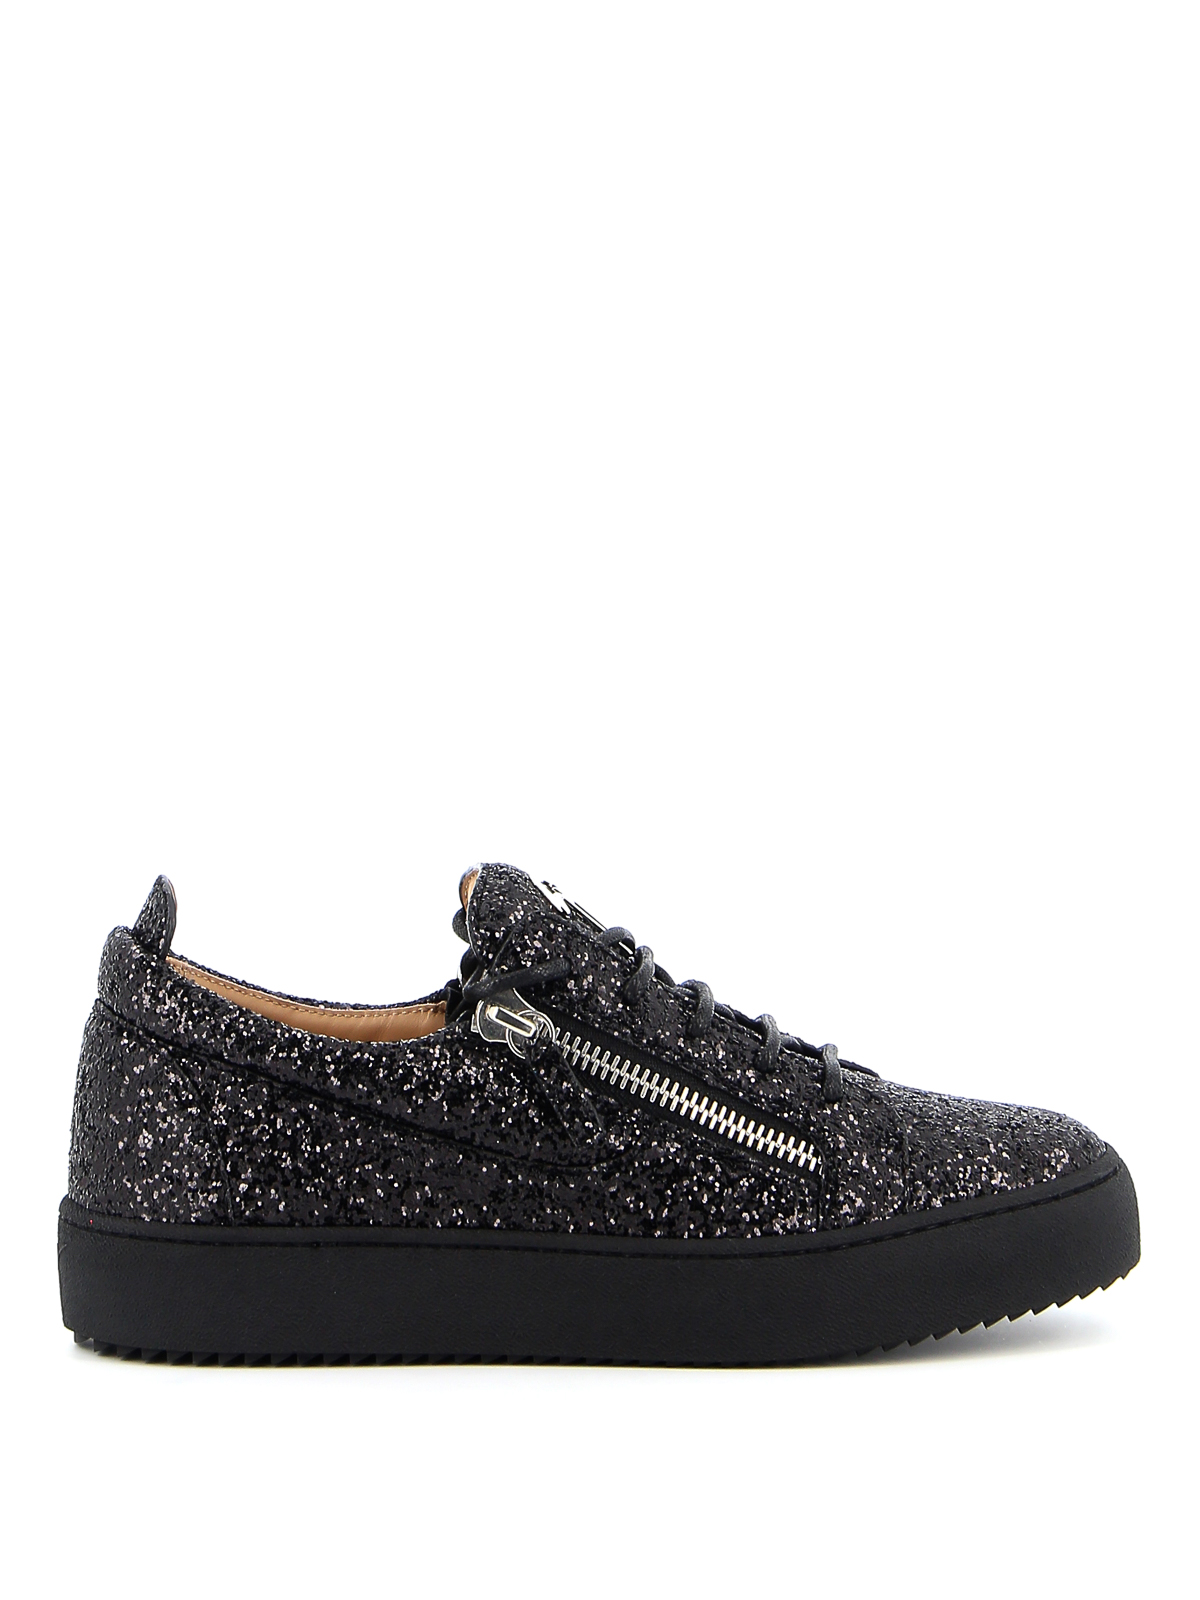 Giuseppe Zanotti MAY LONDON GLITTERED SNEAKERS